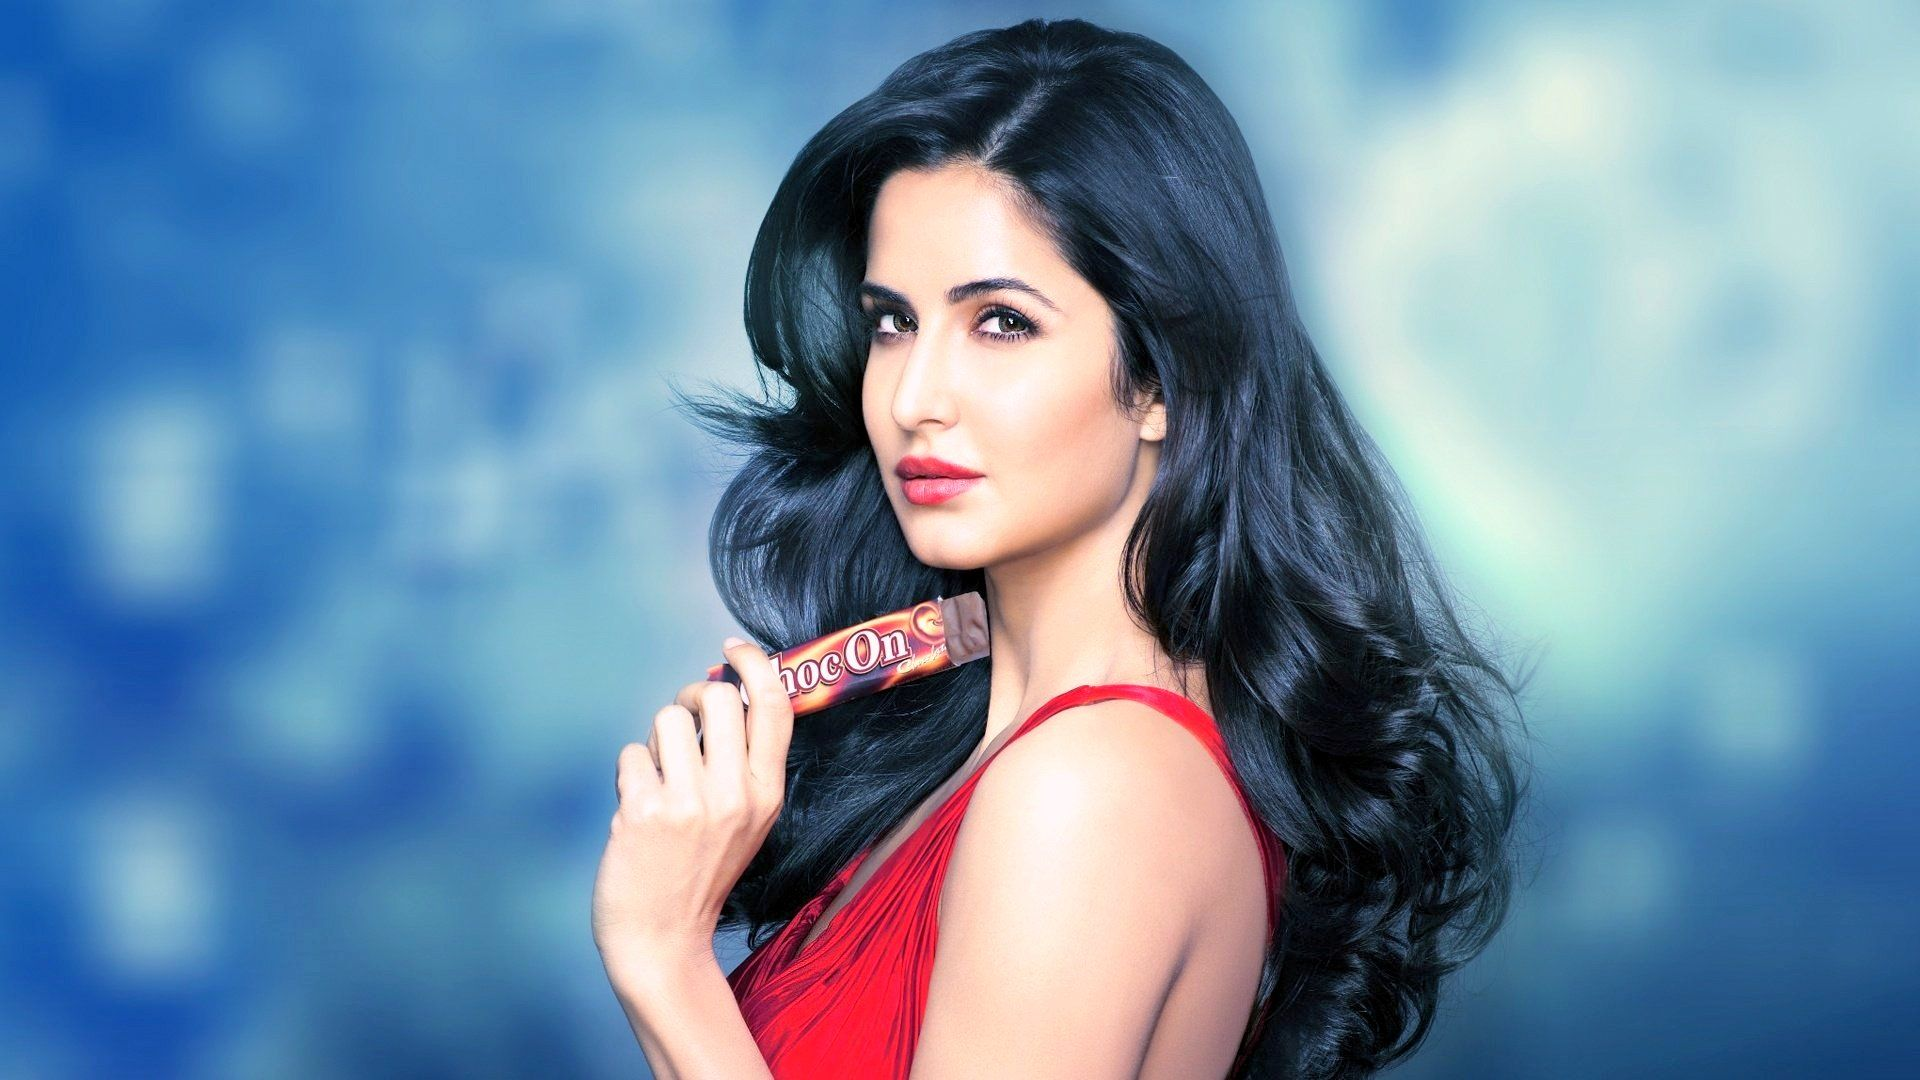 katrina kaif wallpaper download mobile 2018 hd wallpapers | vt